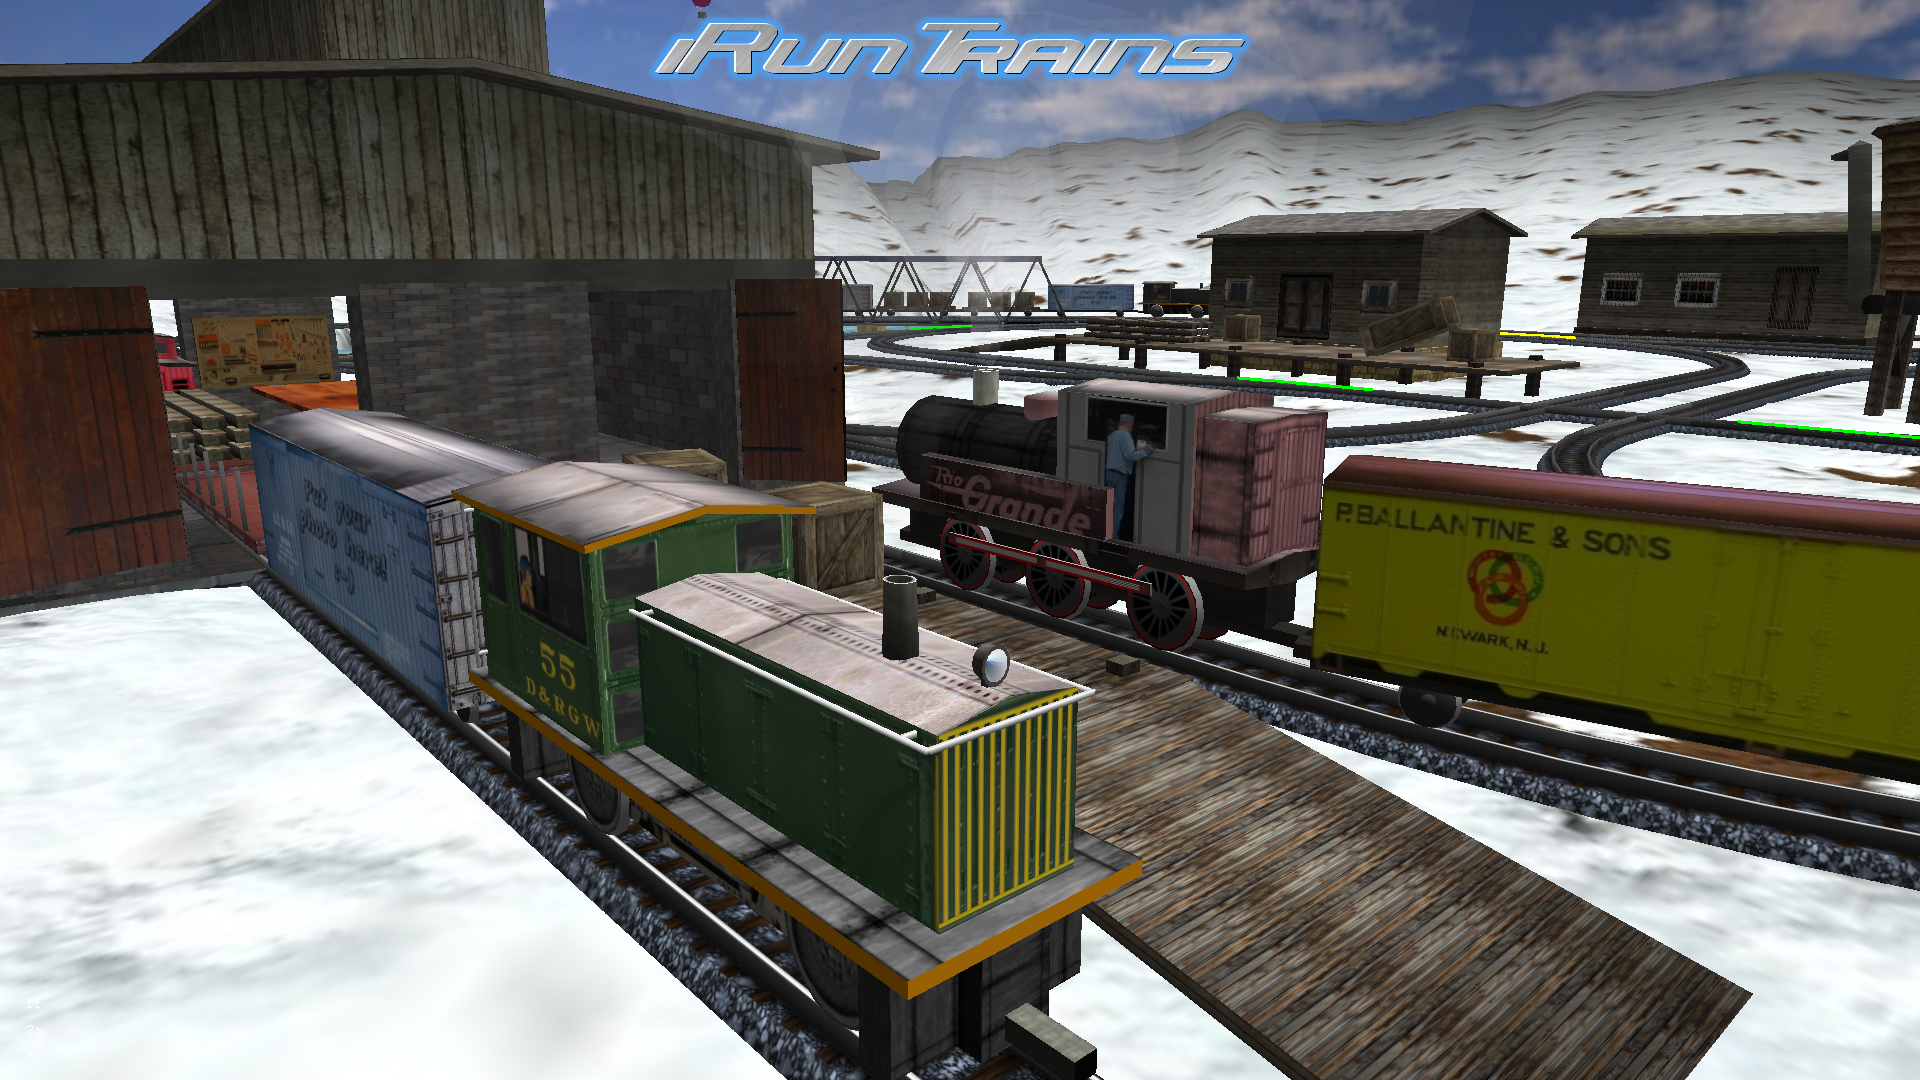 Welcome to iRunTrains